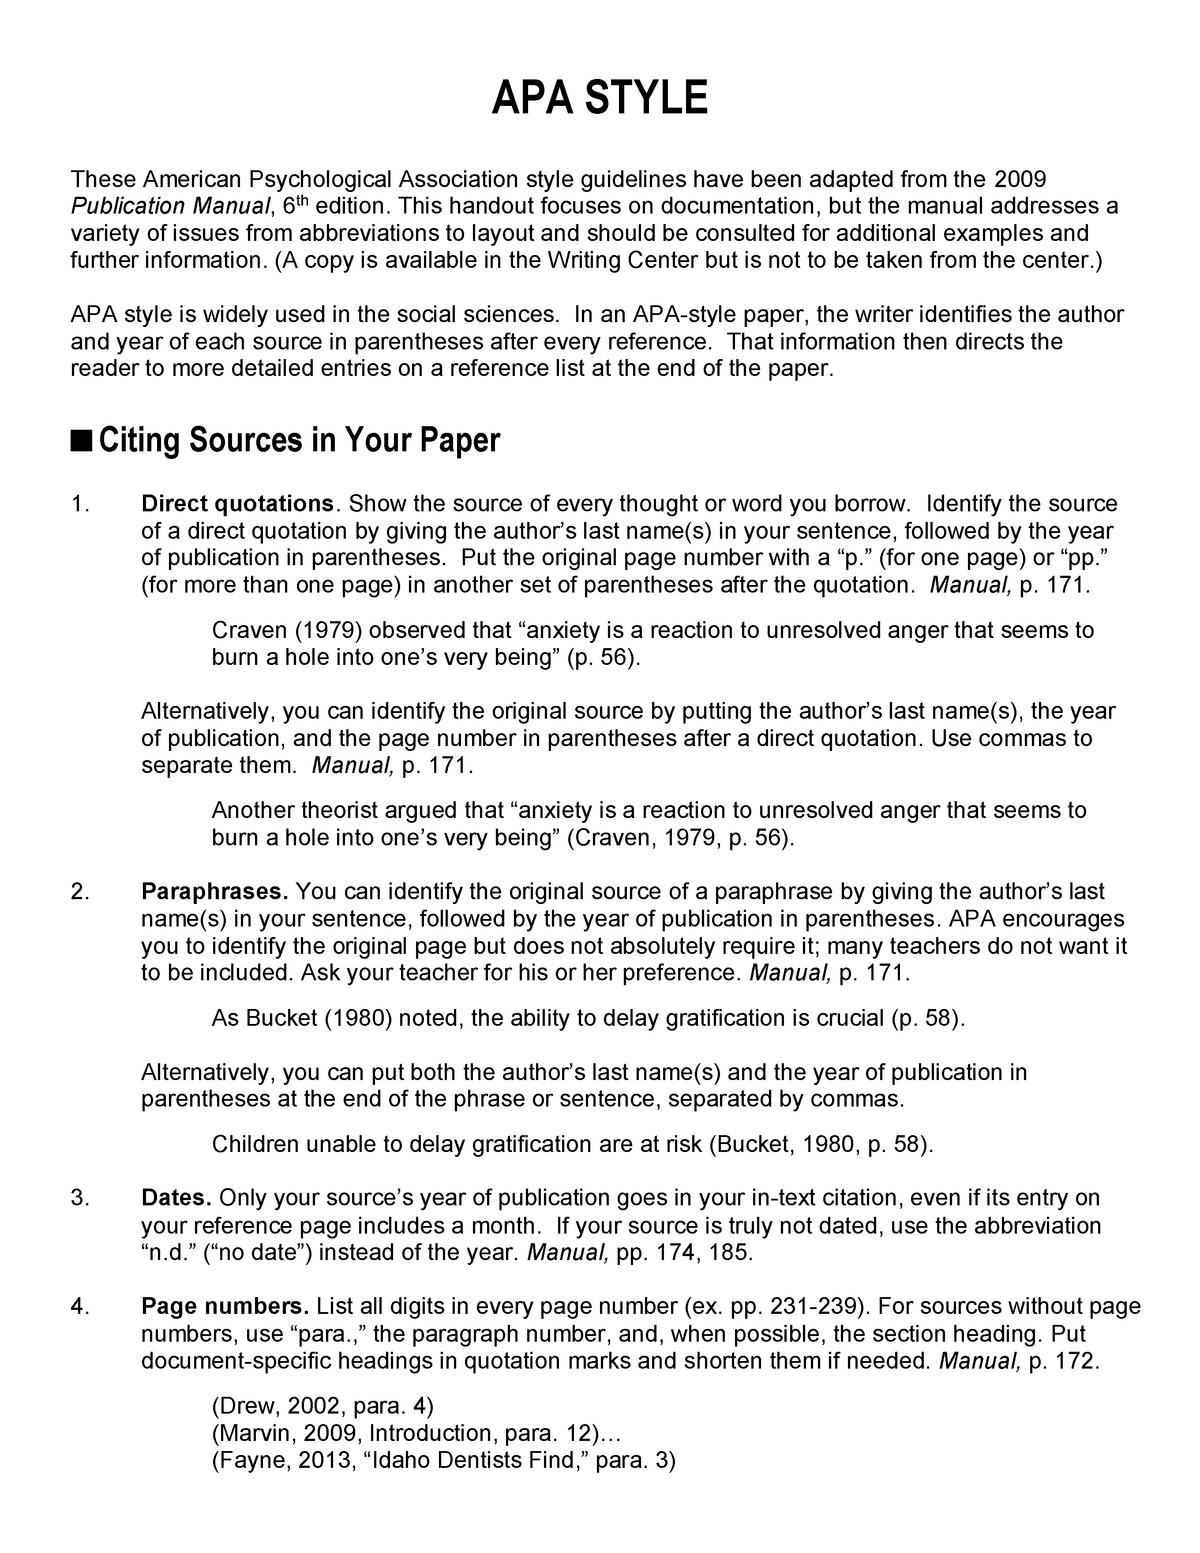 Apa Formatting Edsp 4203 Learners With Exceptionalities